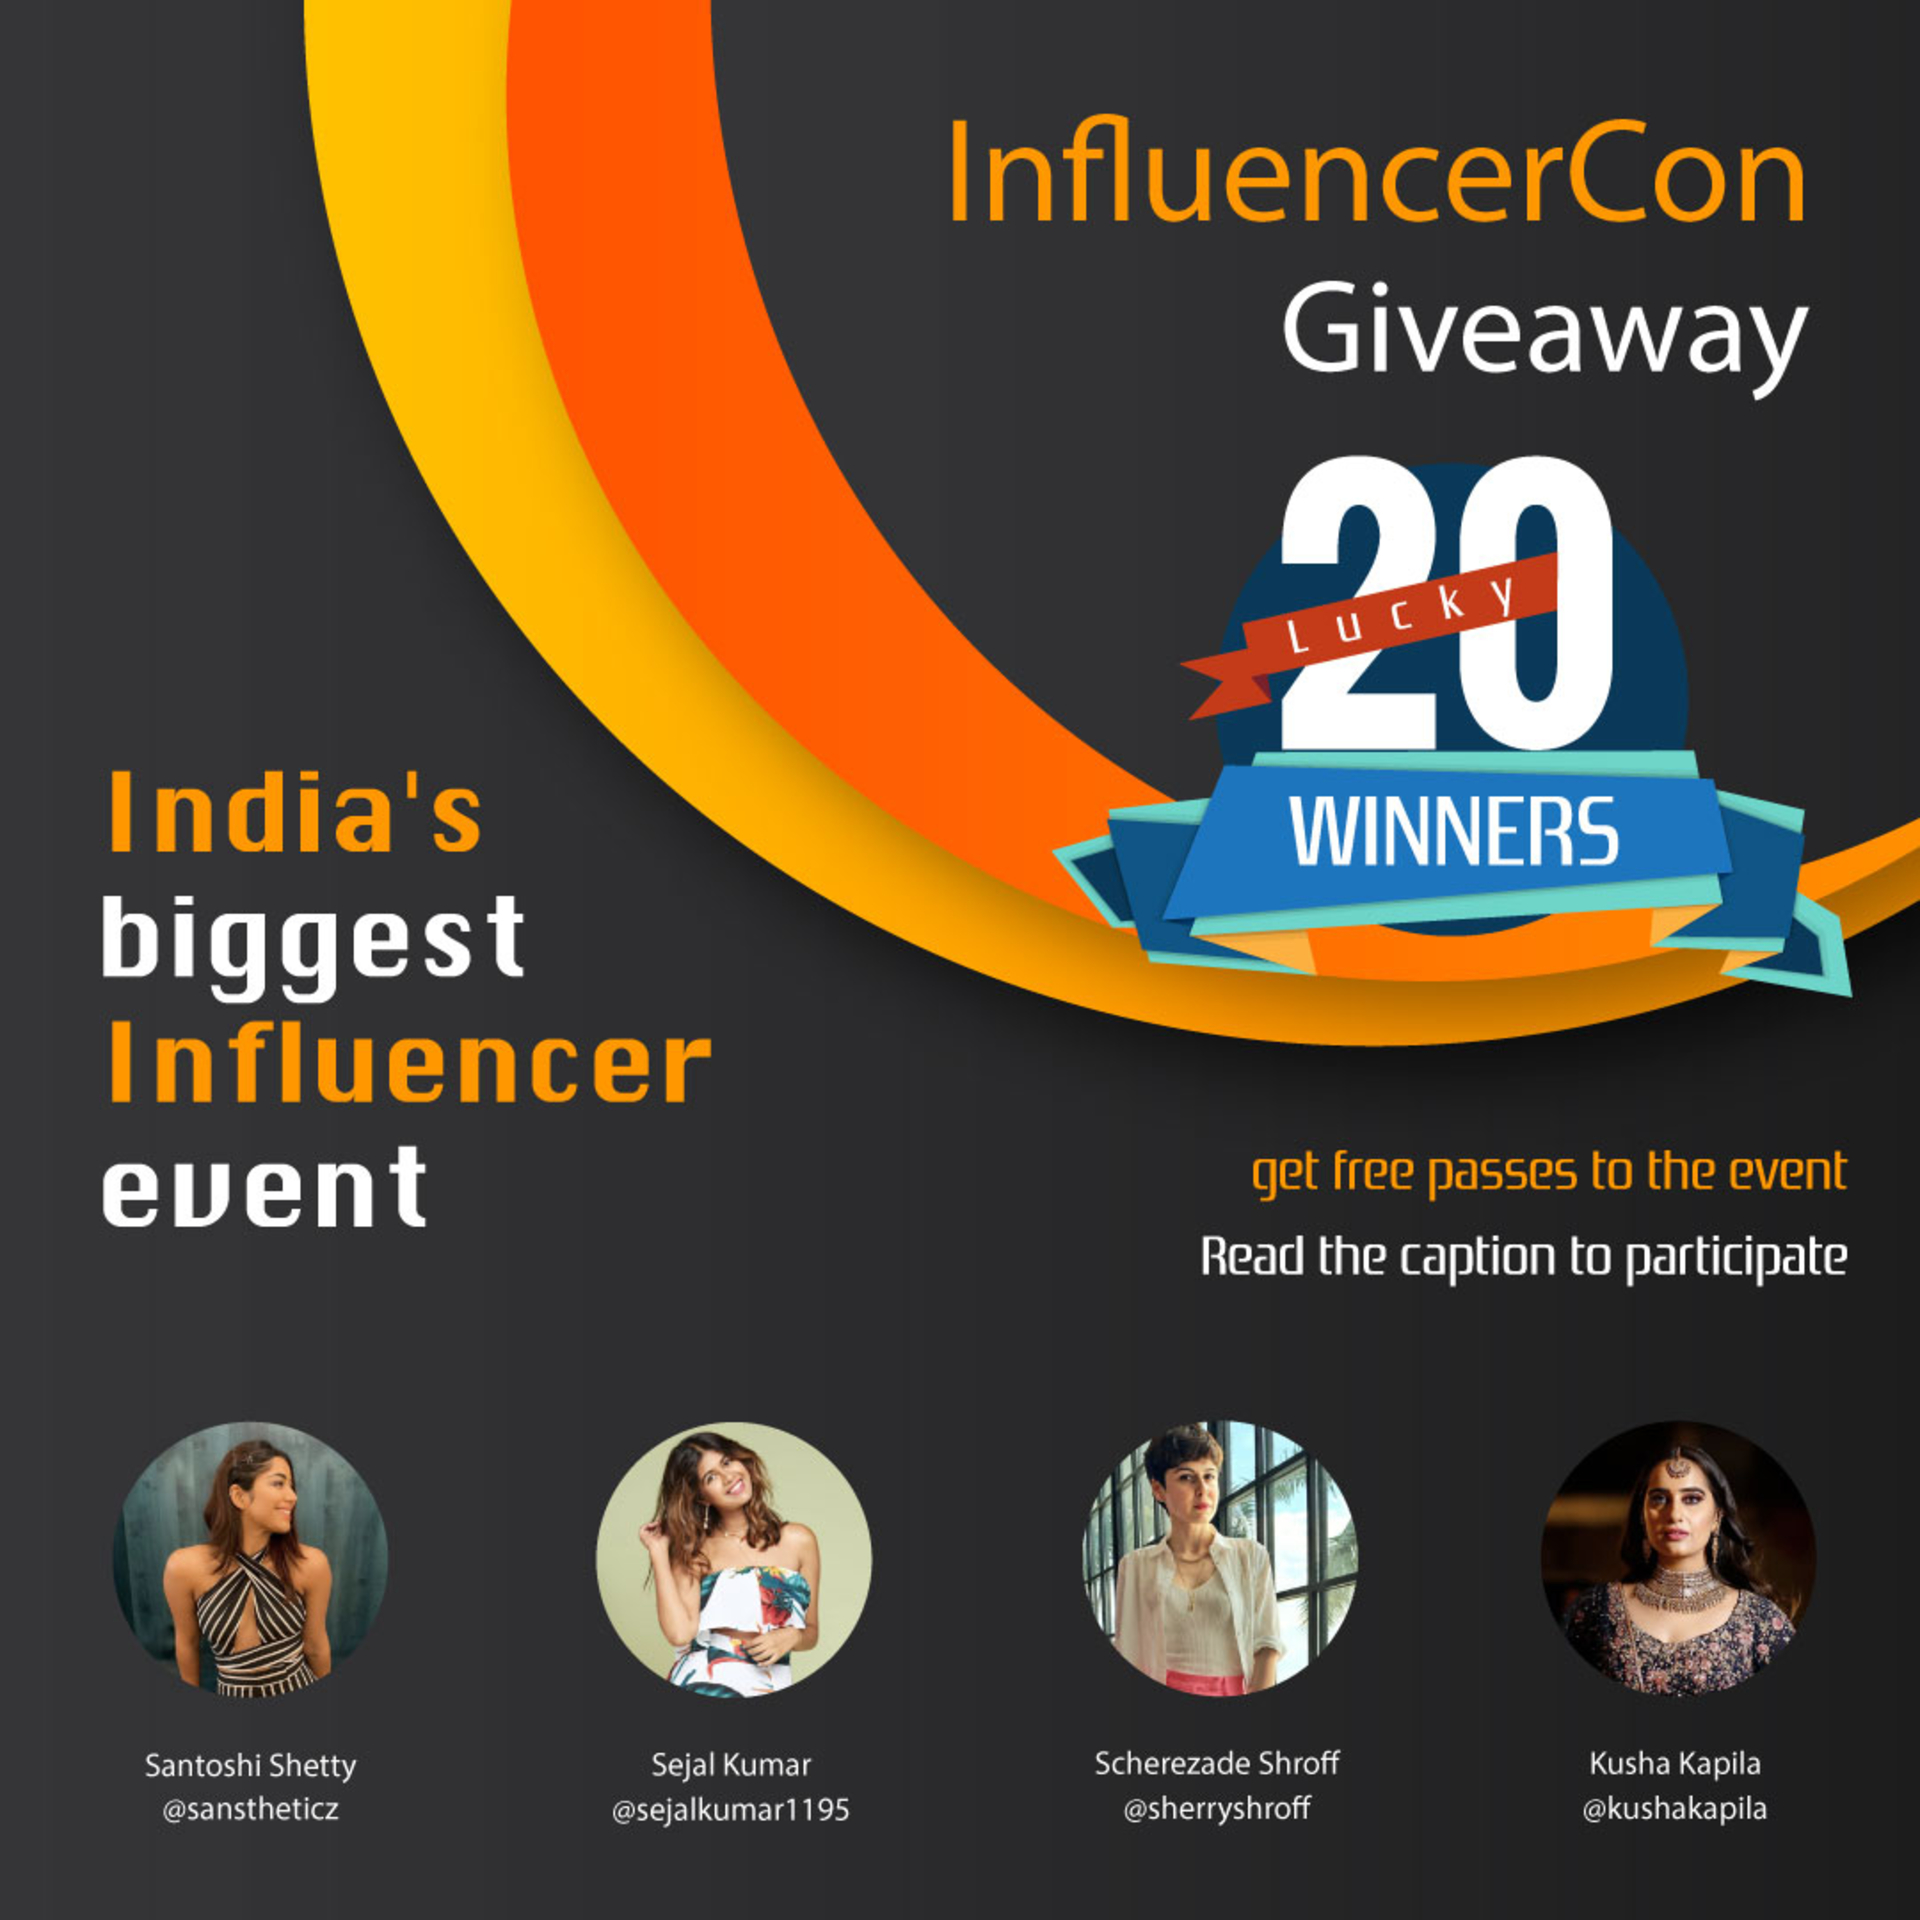 Giving Away 20 More Tickets - InfluencerCon 2019 image